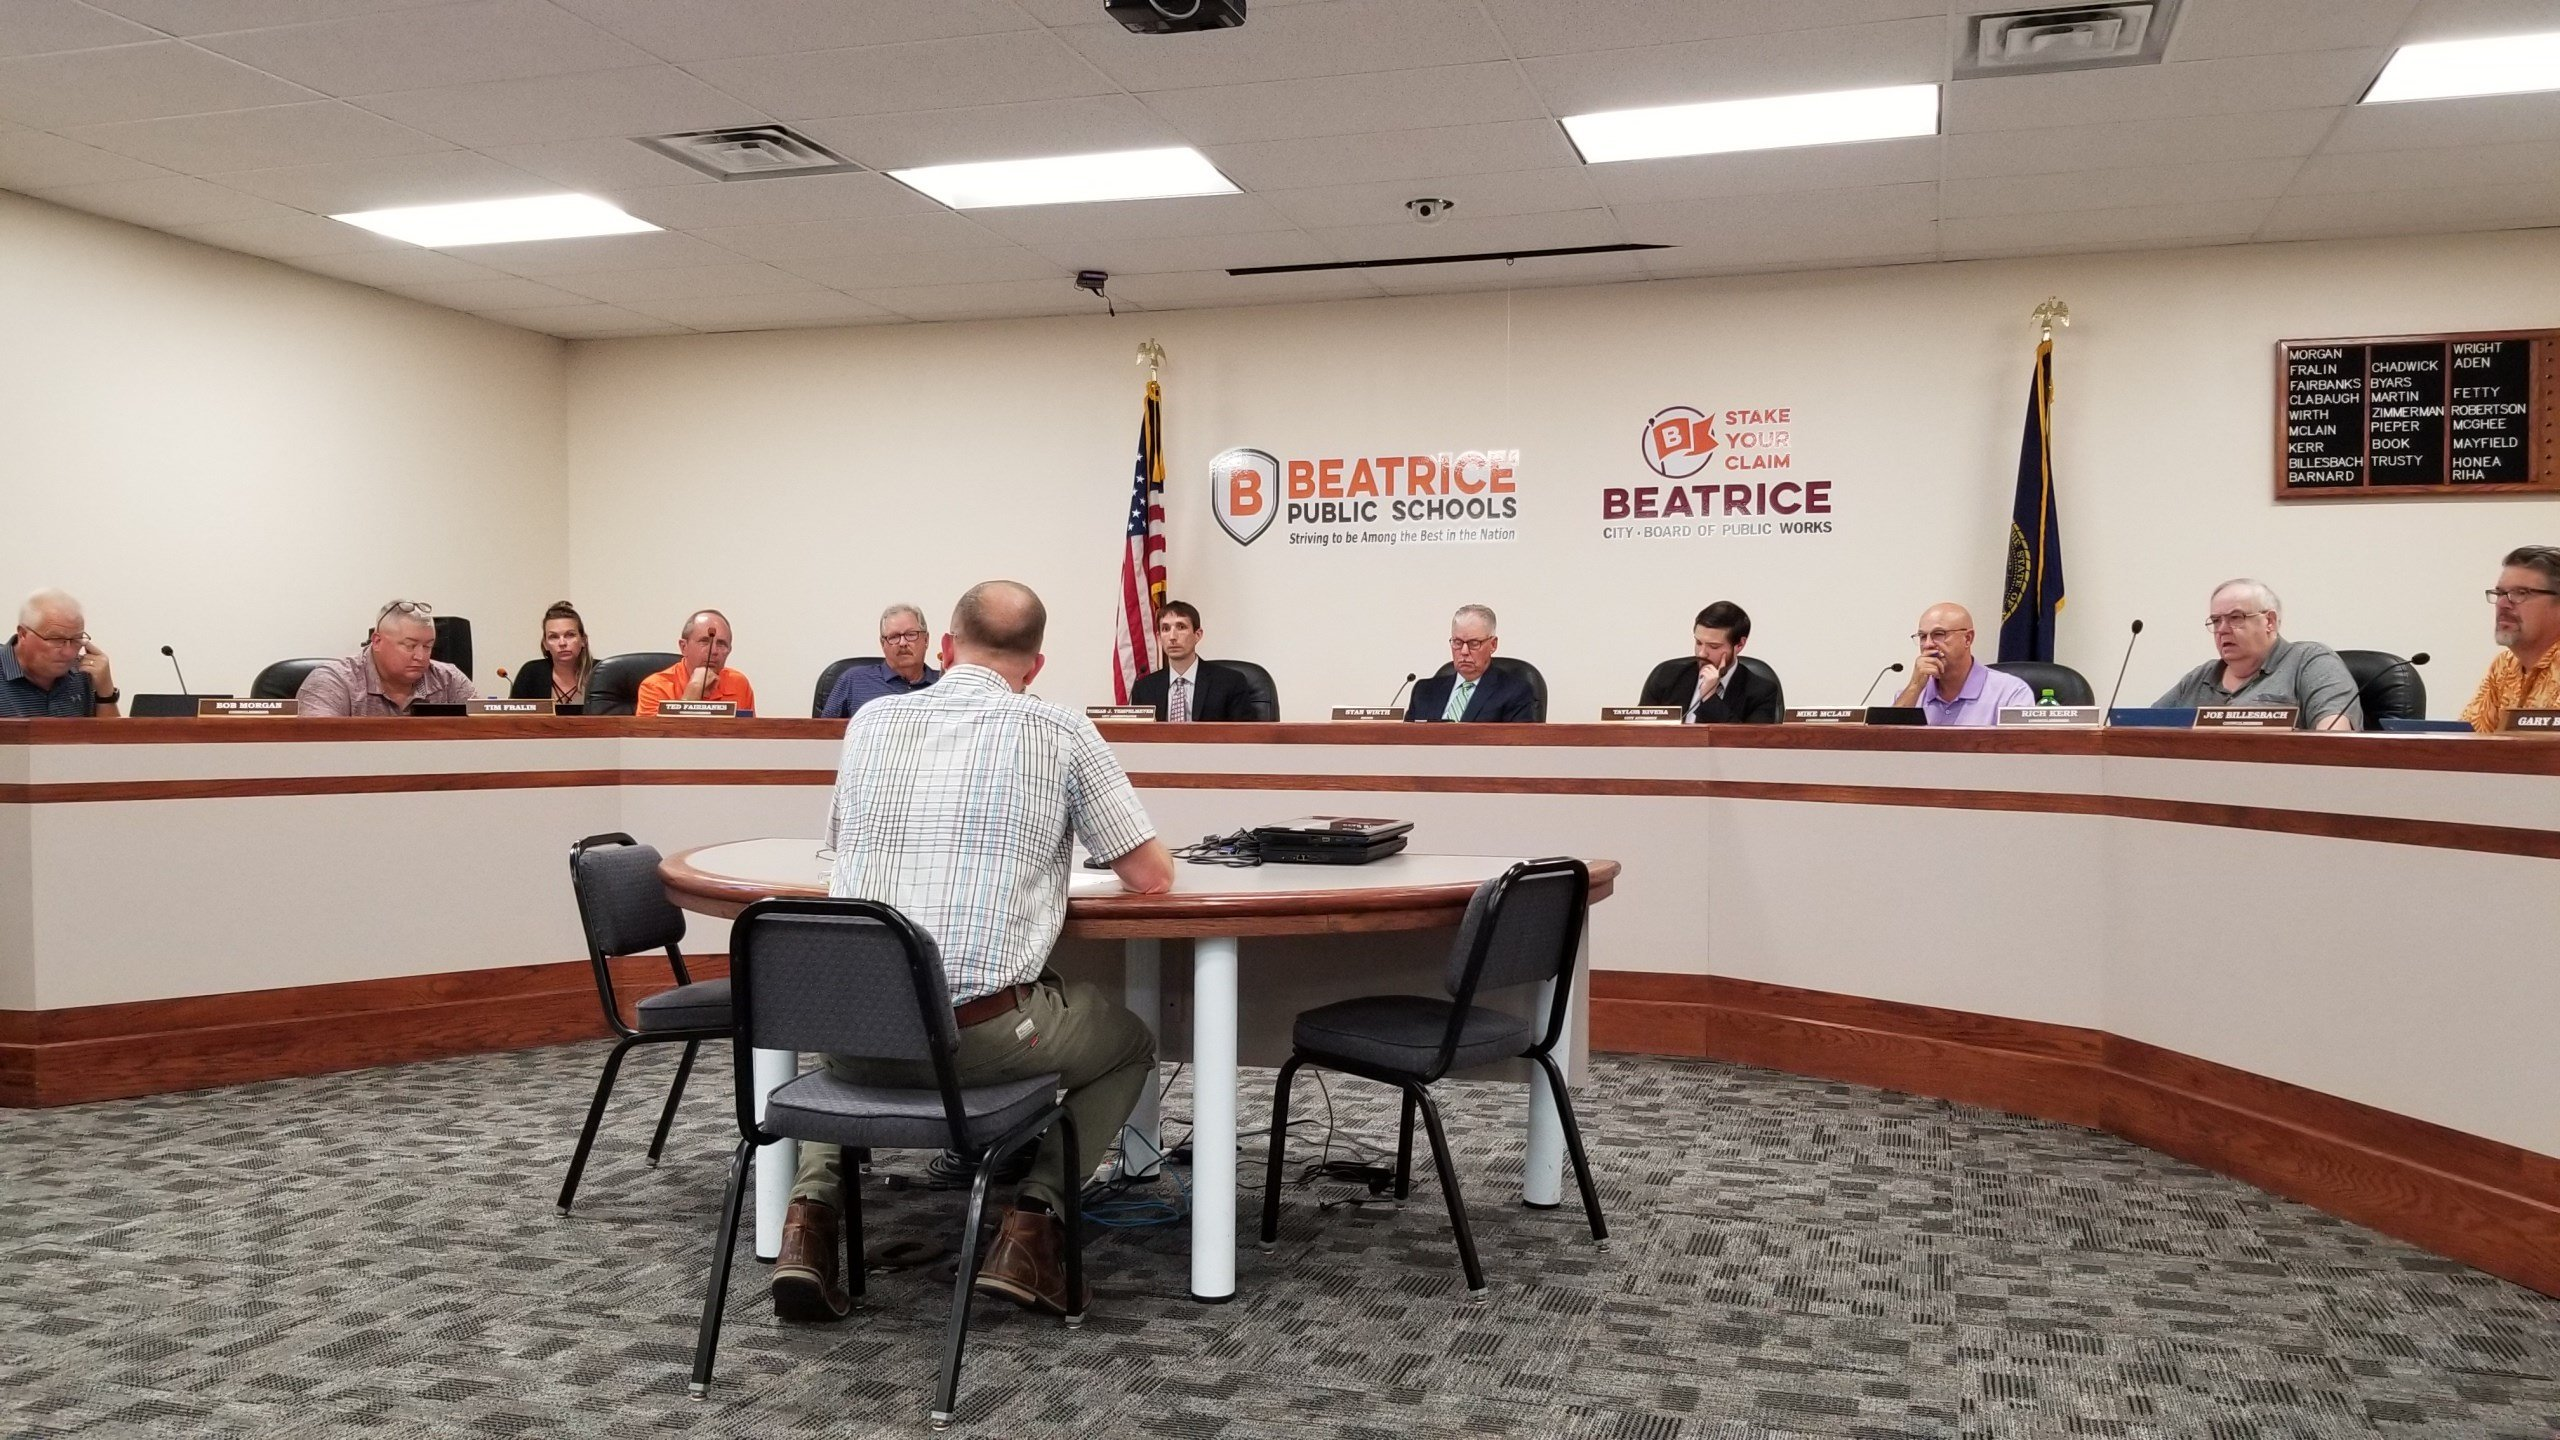 City of Beatrice applies for housing rehab, downtown redevelopment assistance